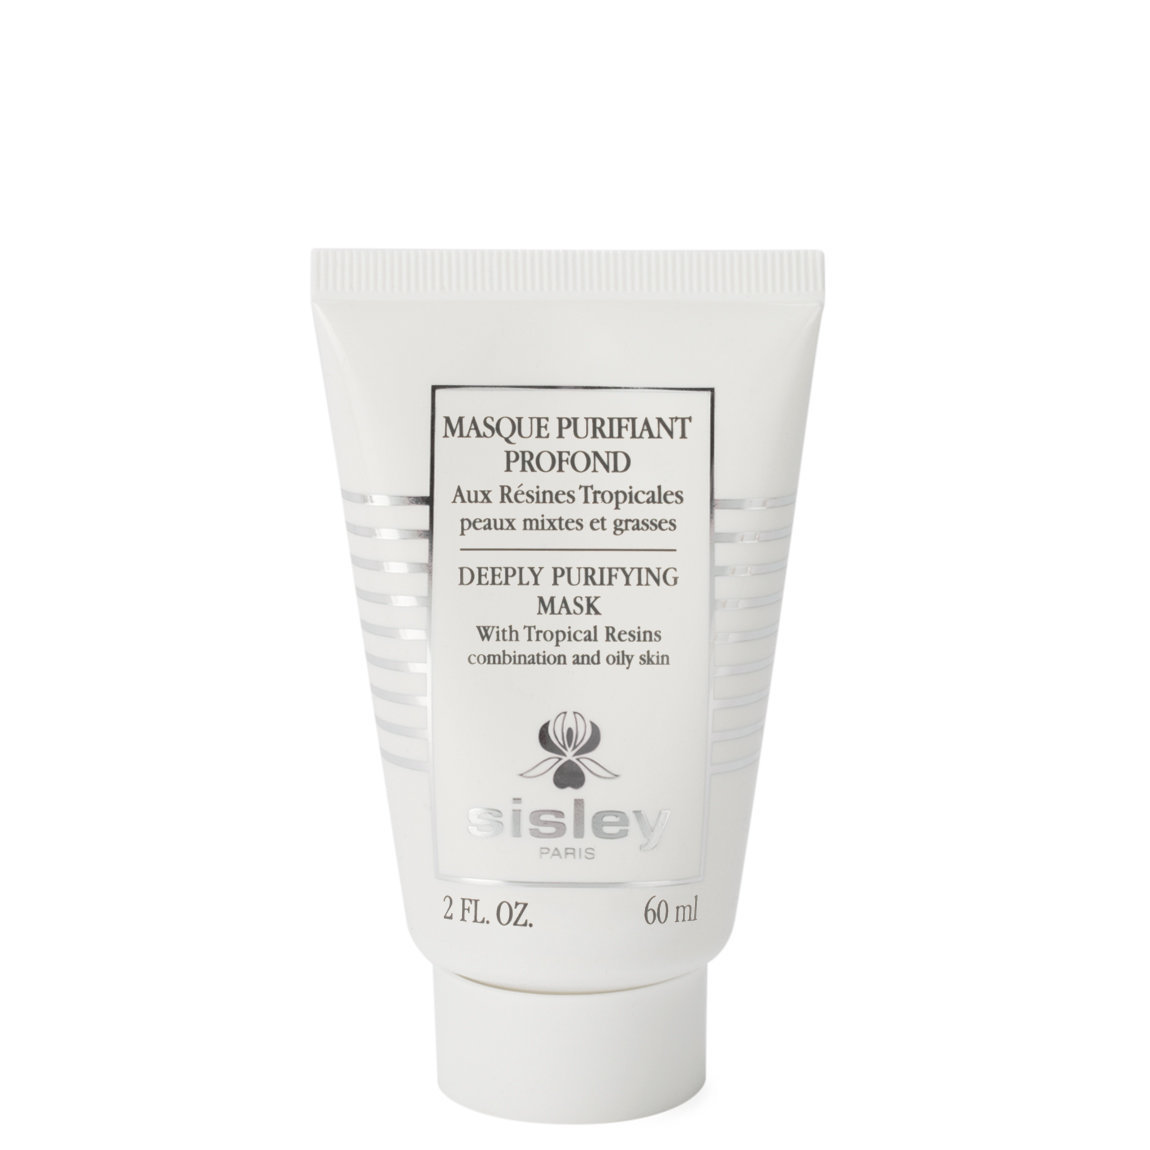 Sisley-Paris Deeply Purifying Mask with Tropical Resins alternative view 1 - product swatch.